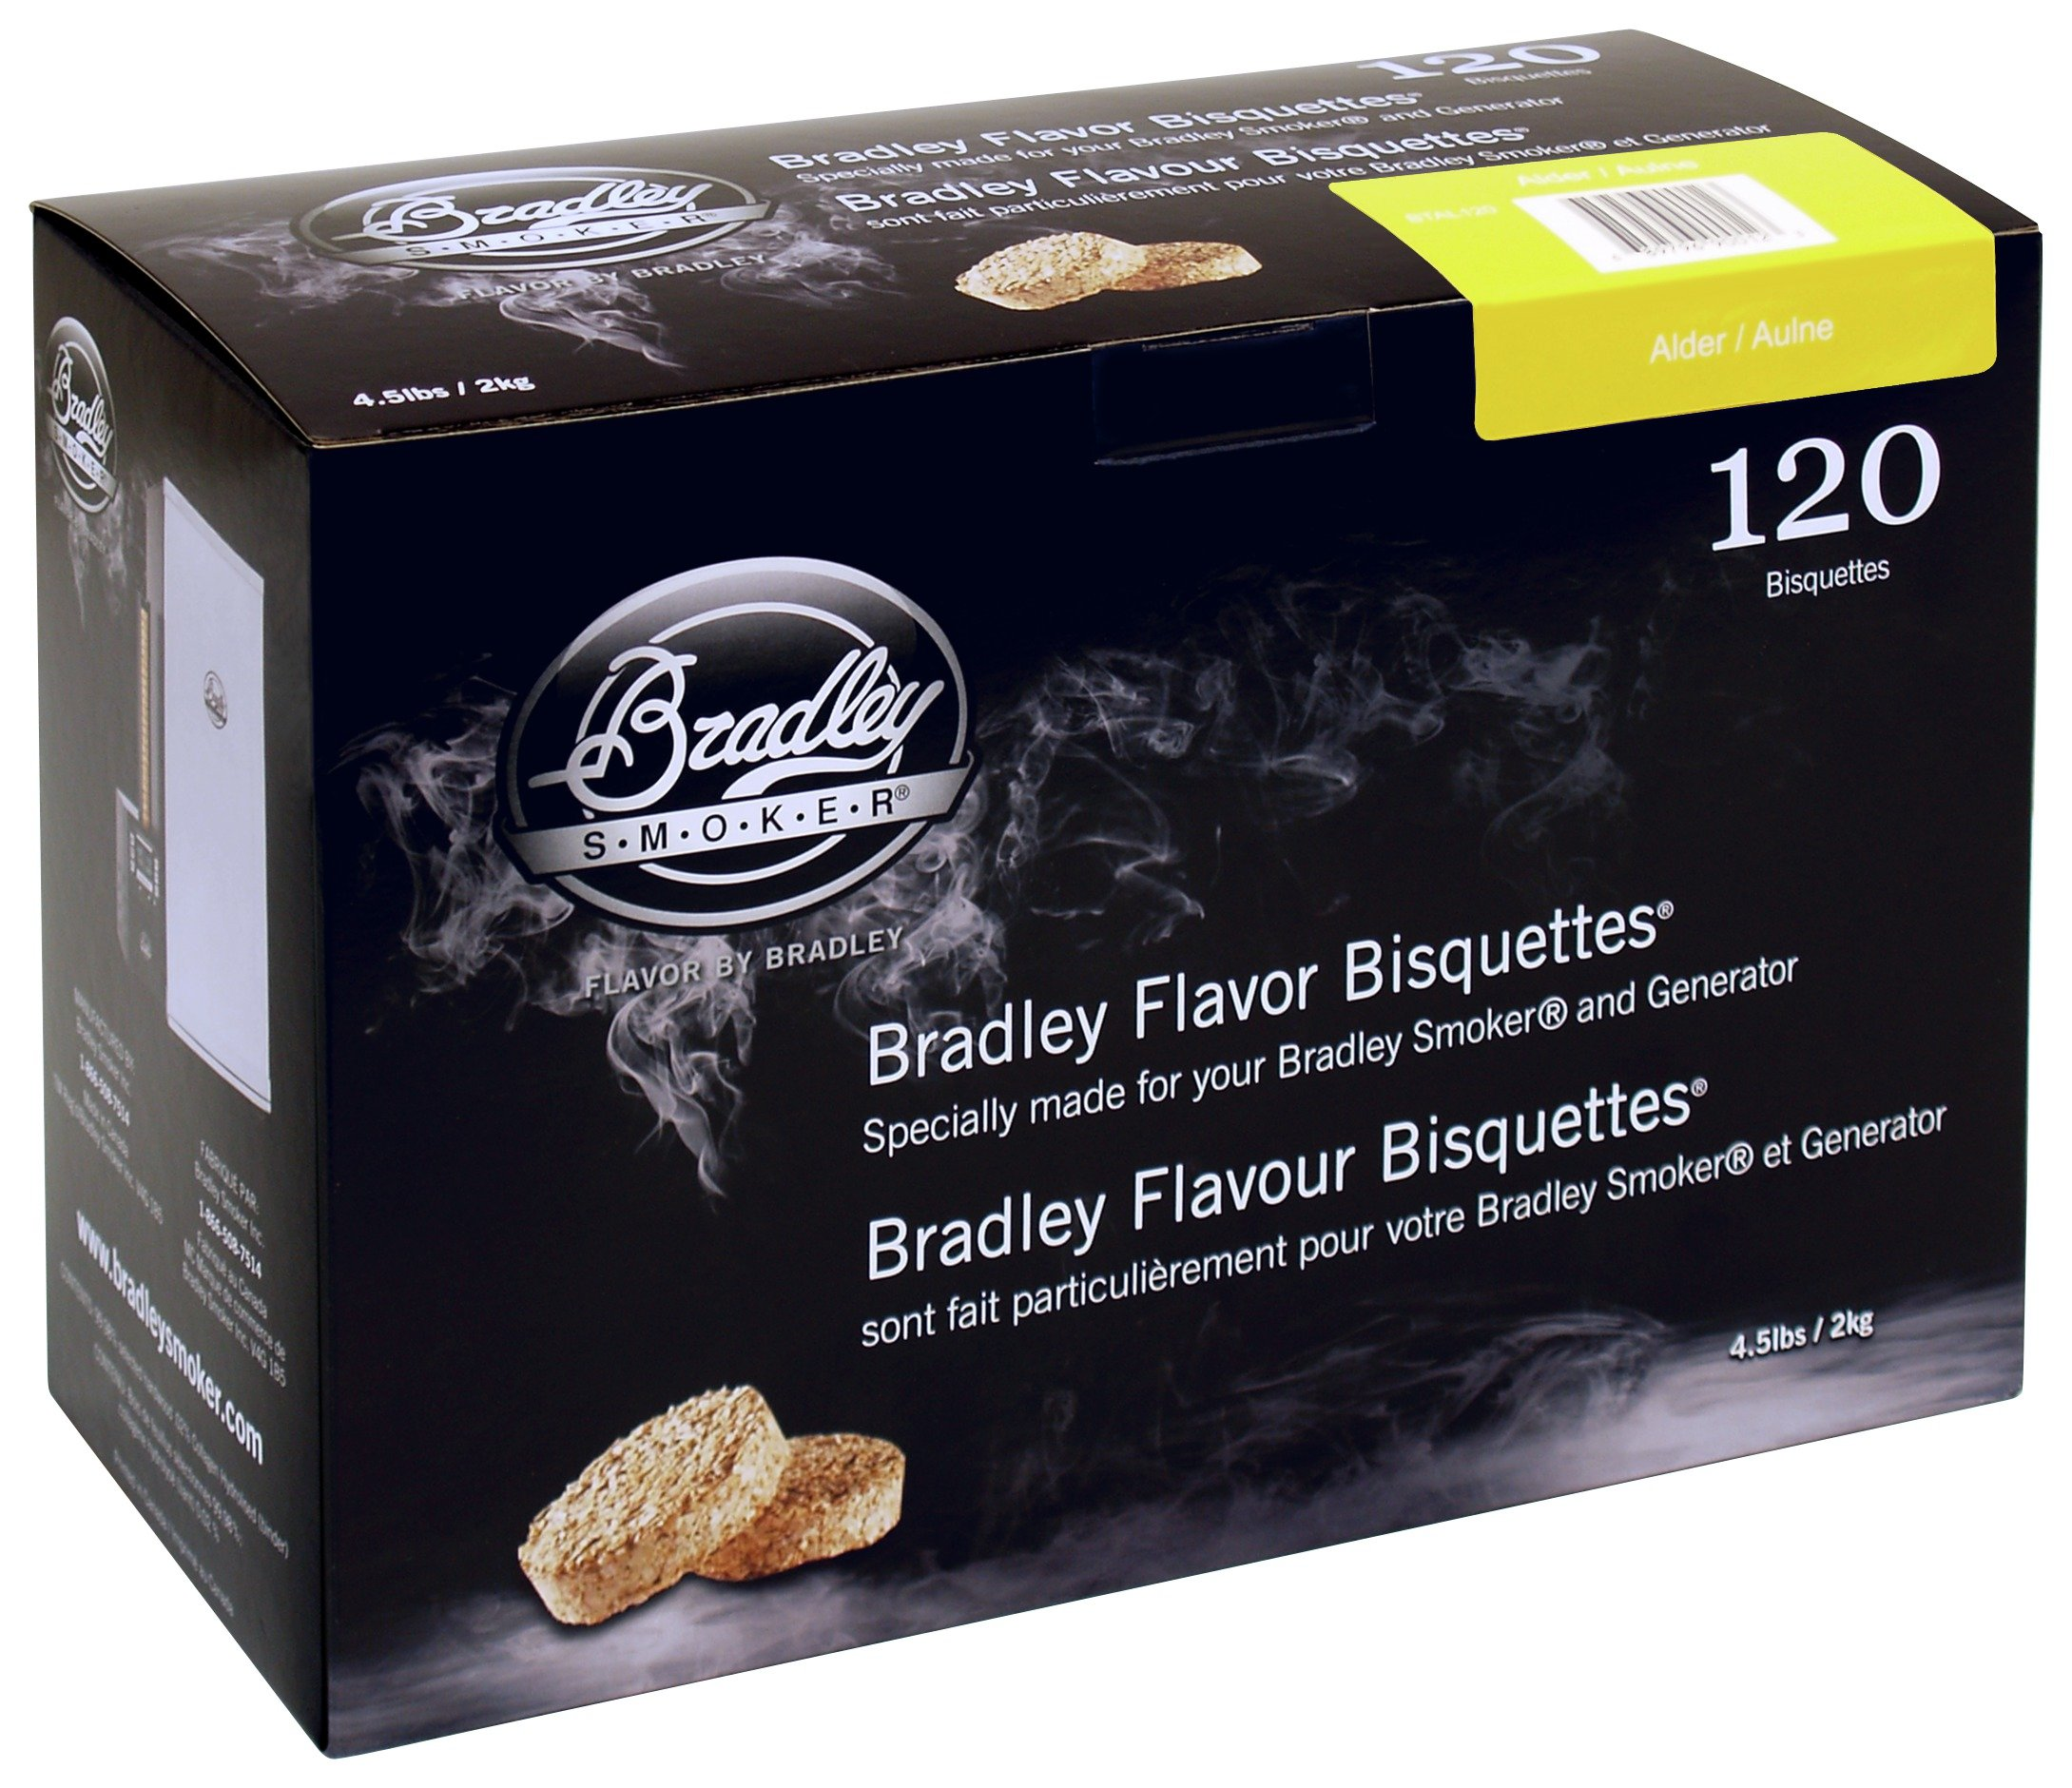 Image of Bradley Smoker - Alder - Bisquettes - 120 Pack